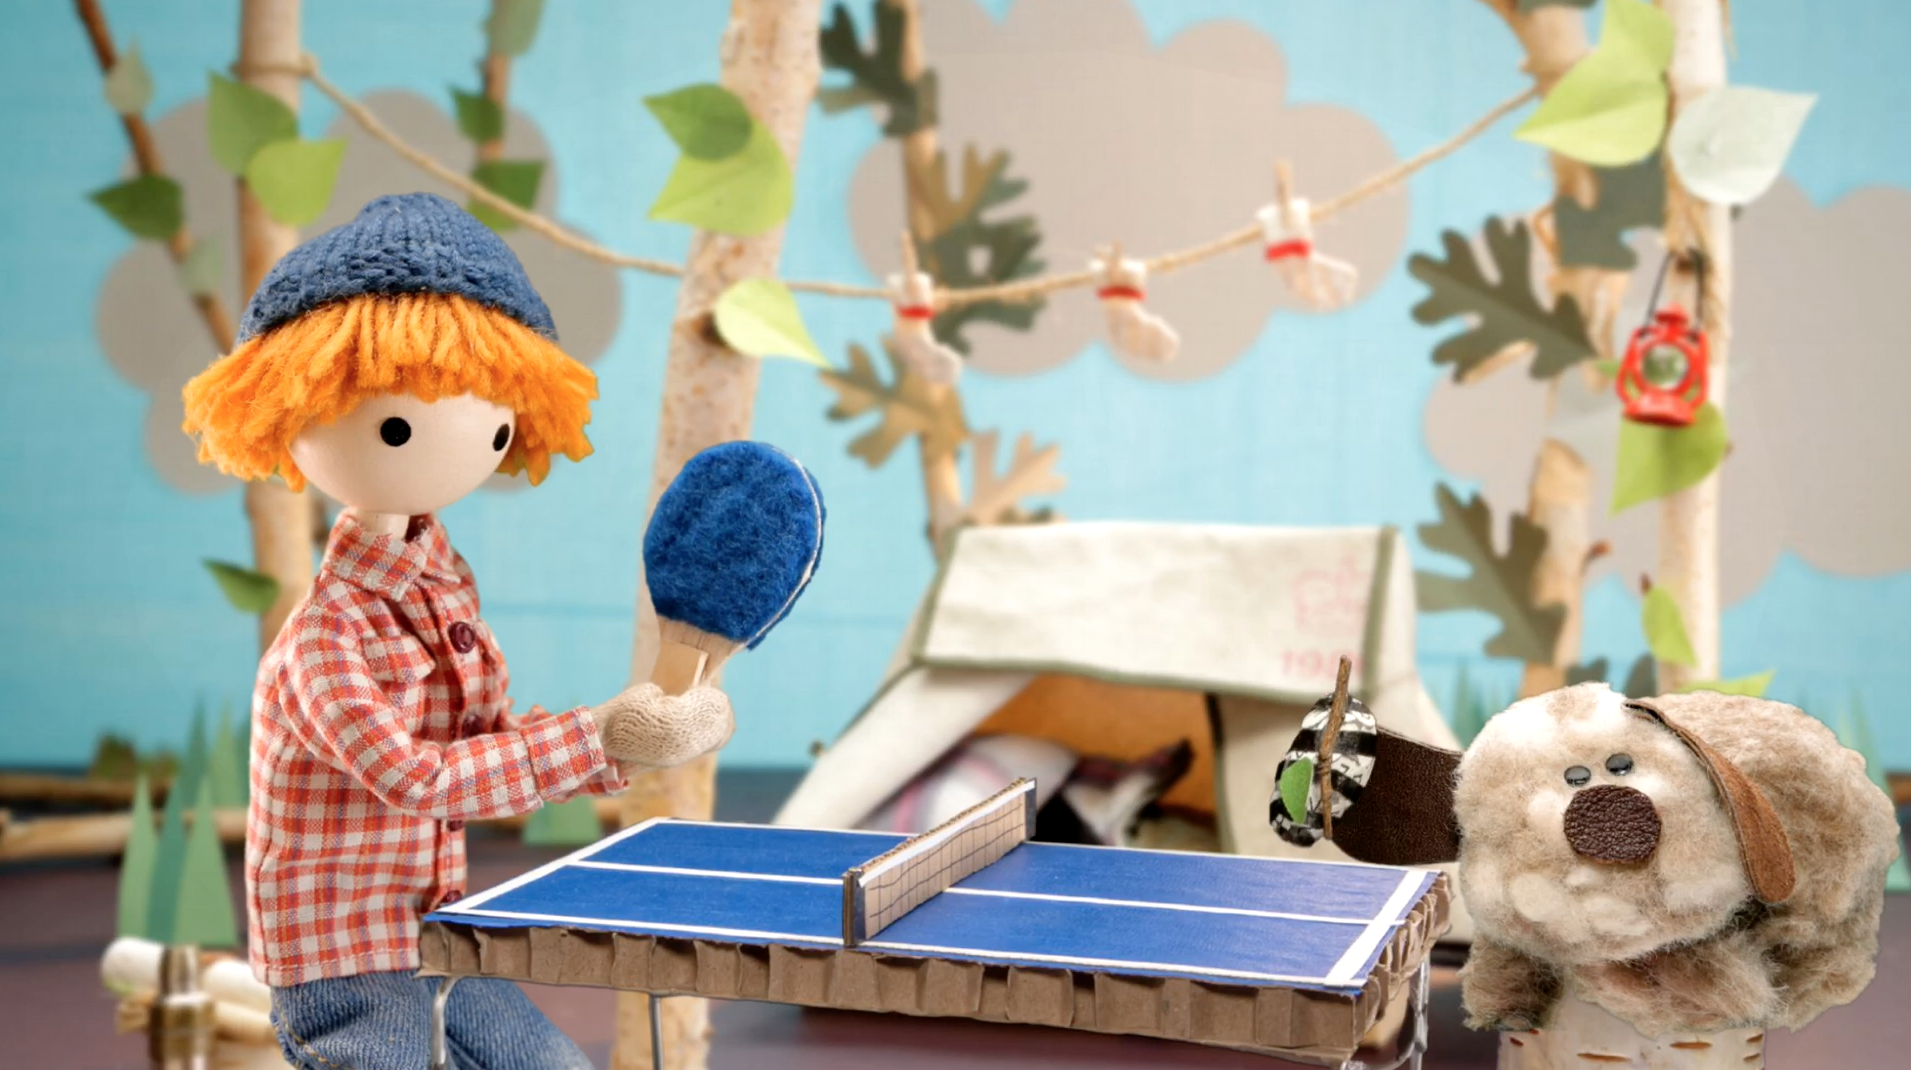 Play Easter egg ping pong with Jean Cloud & Foggy